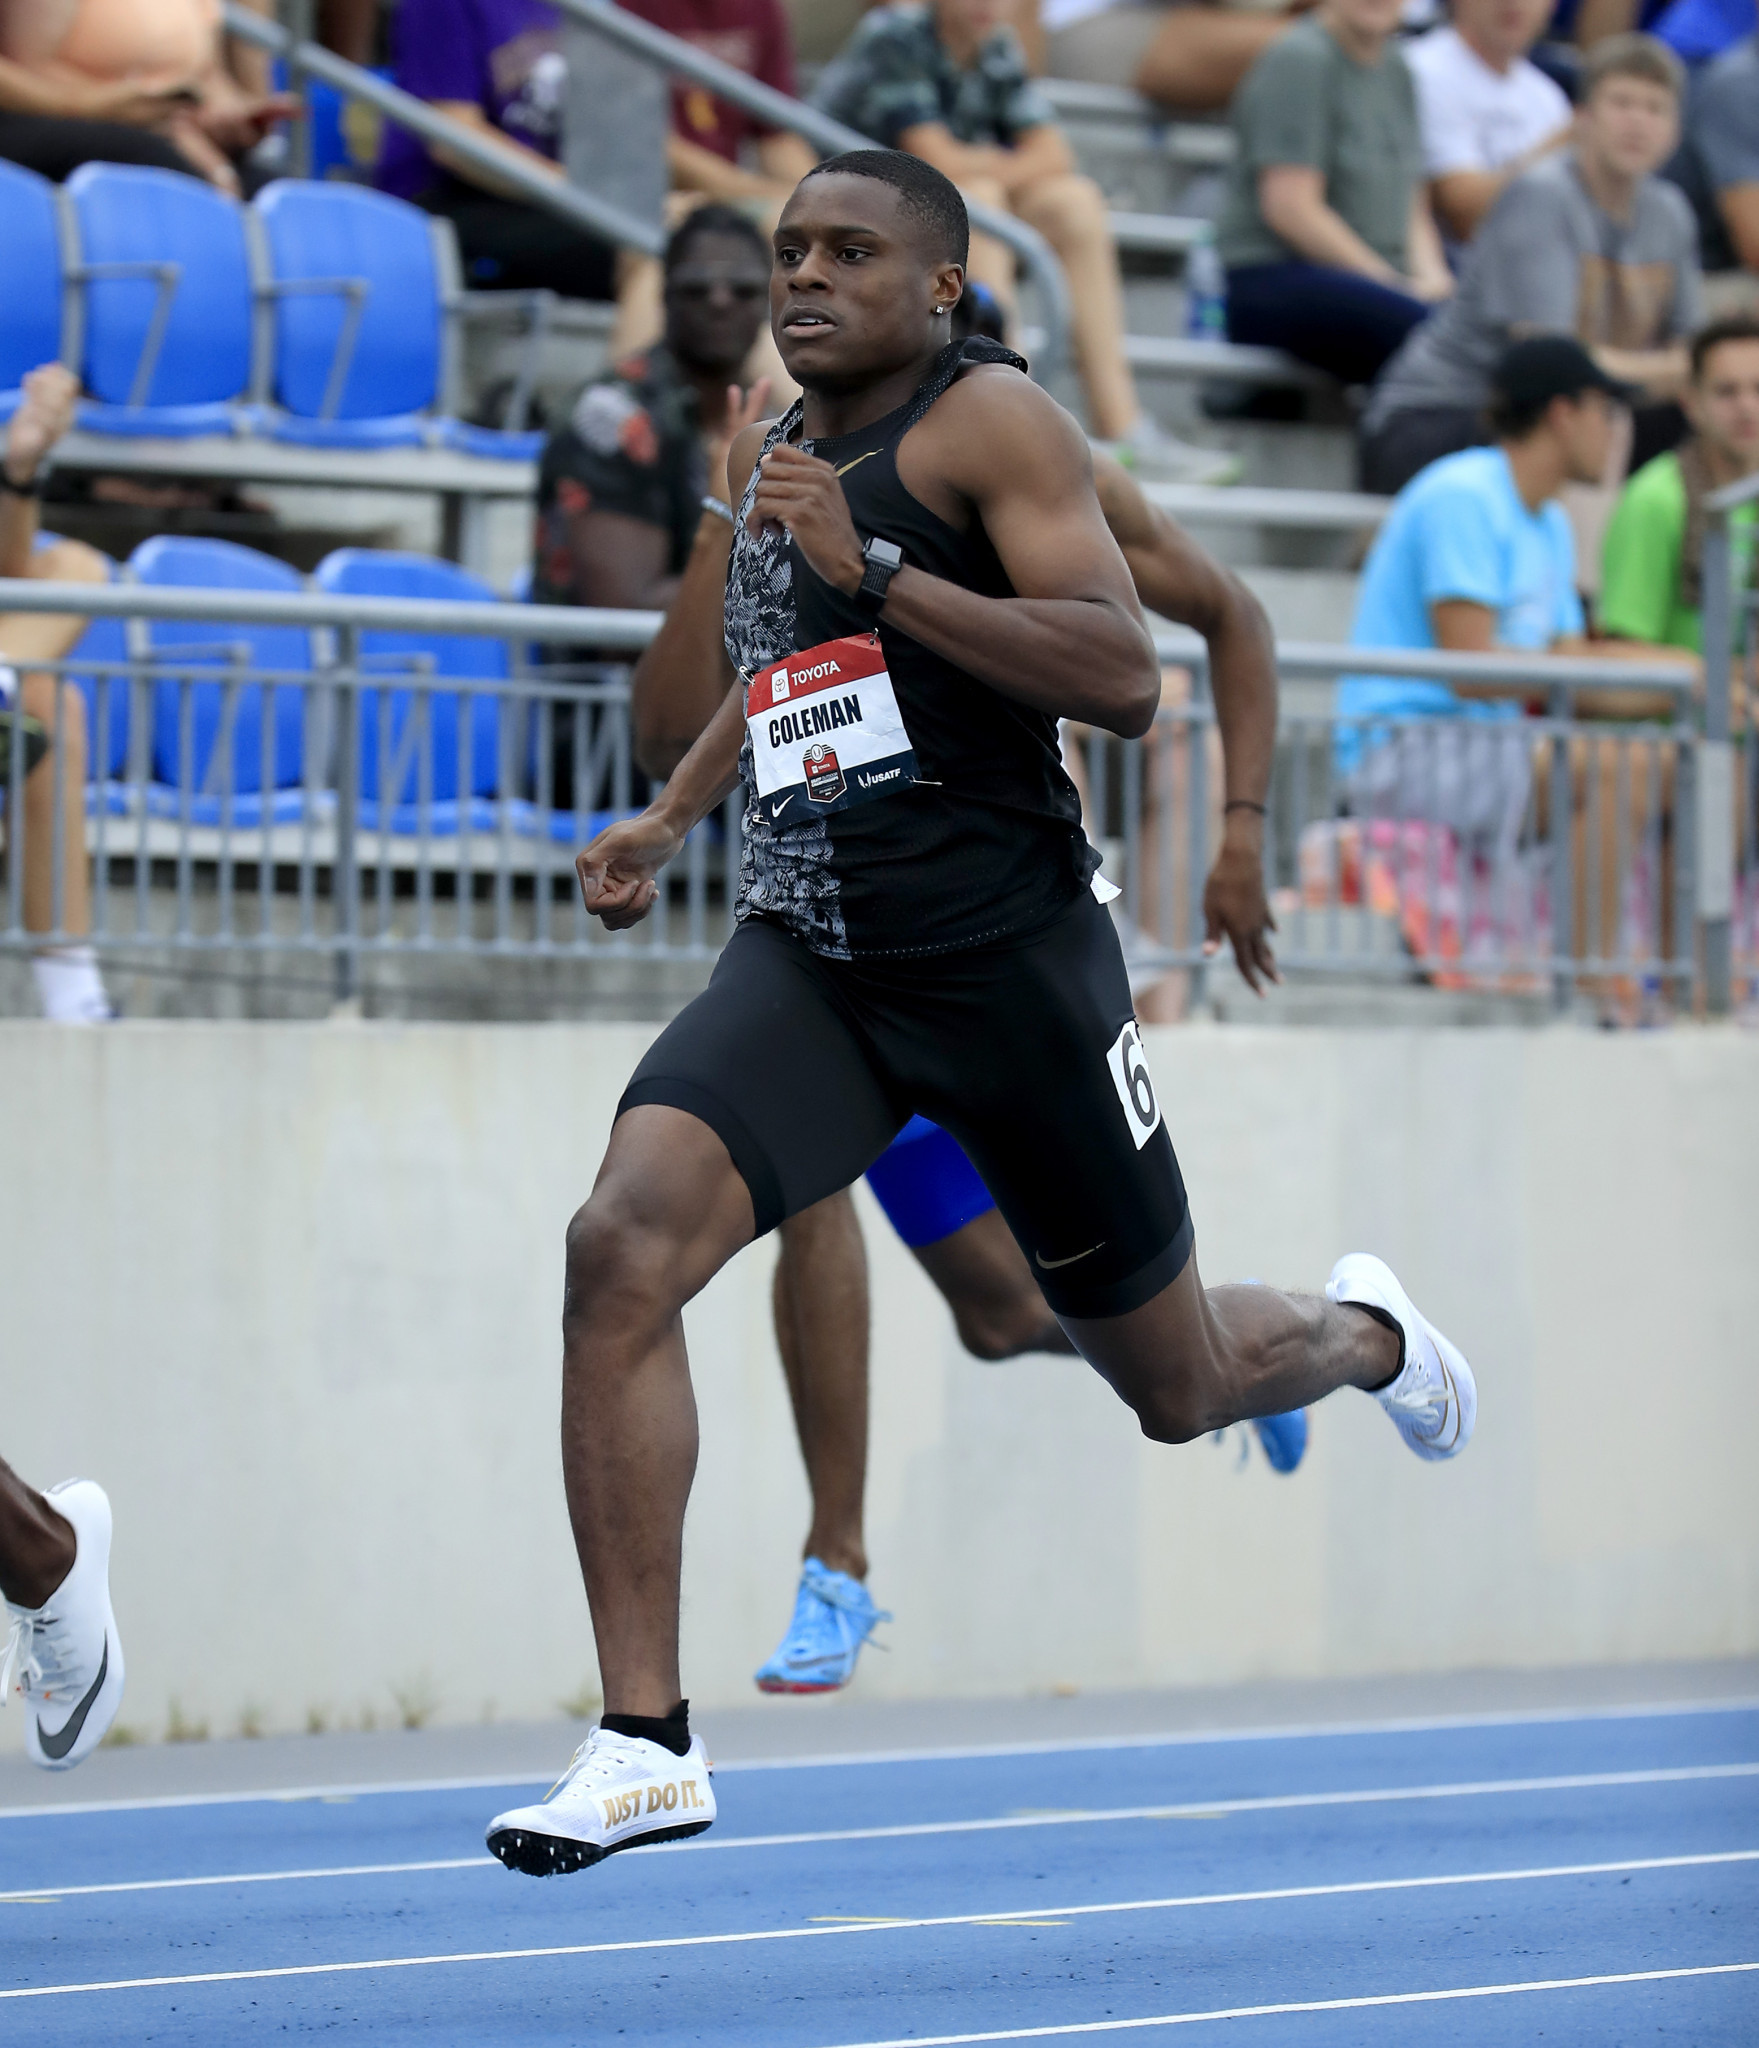 United States sprinter Christian Coleman is reportedly facing a ban from athletics for three whereabouts failures ©Getty Images